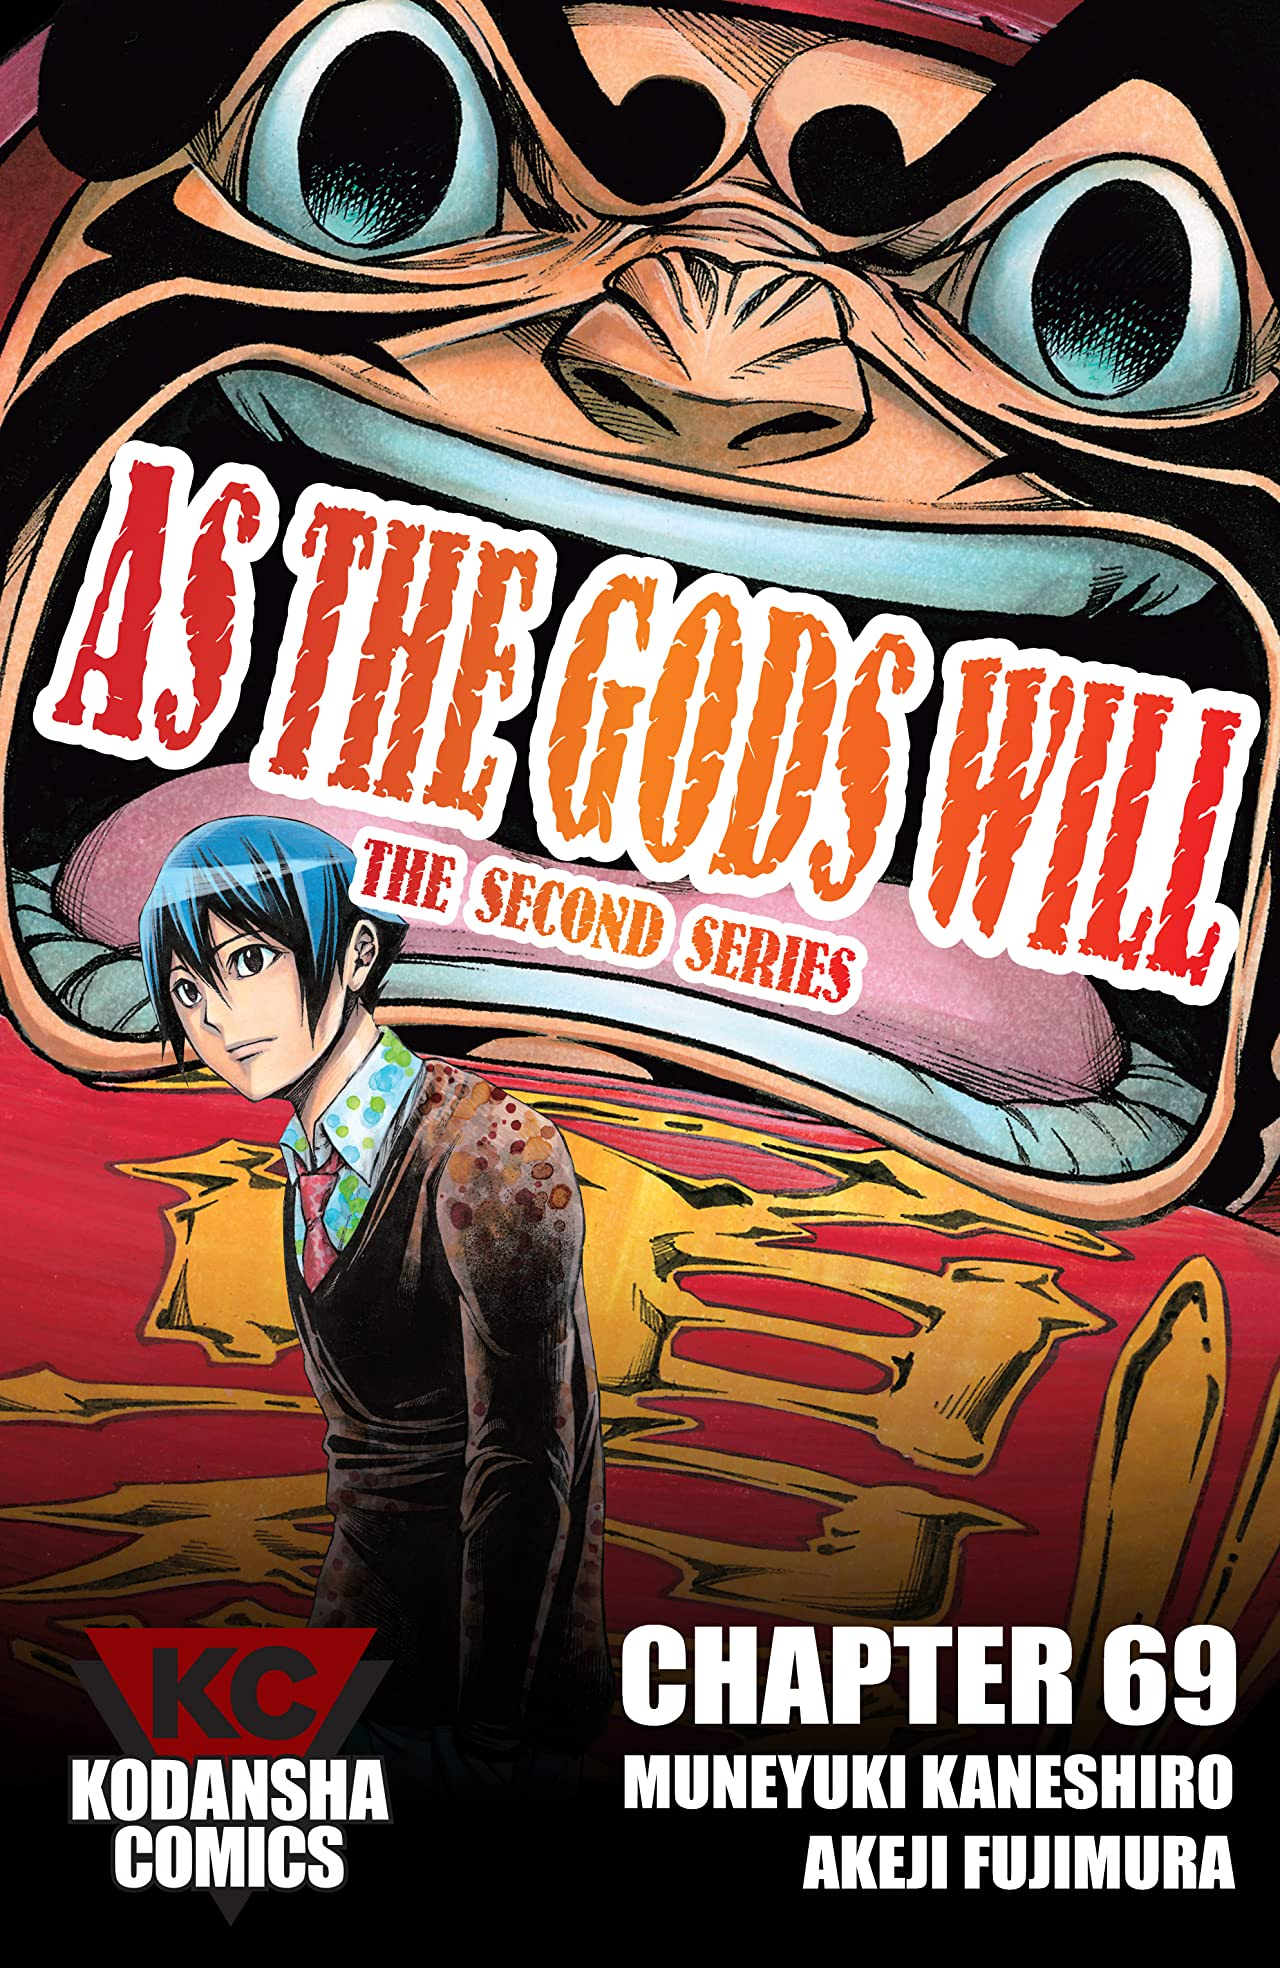 As The Gods Will: The Second Series #69